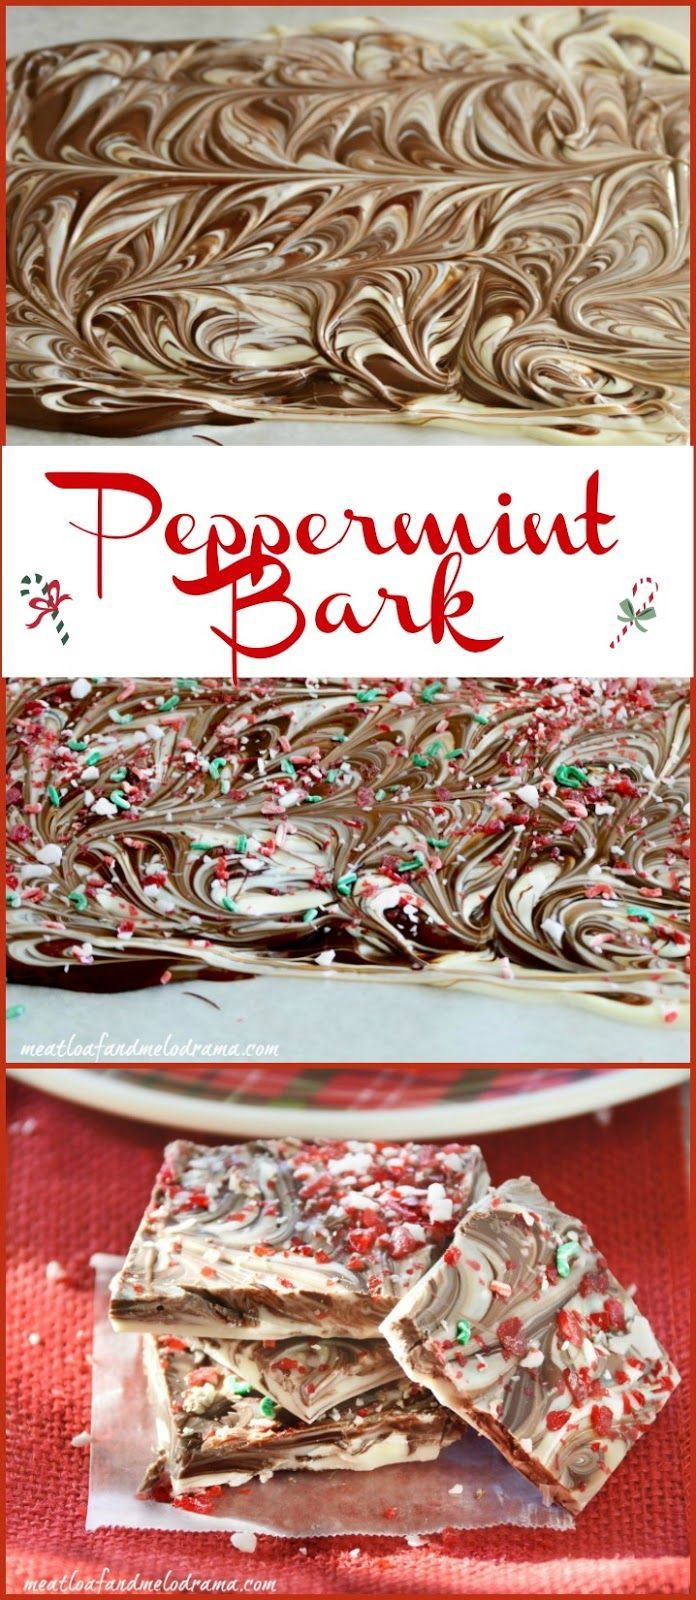 Peppermint Bark ~ An easy no-bake Christmas treat!